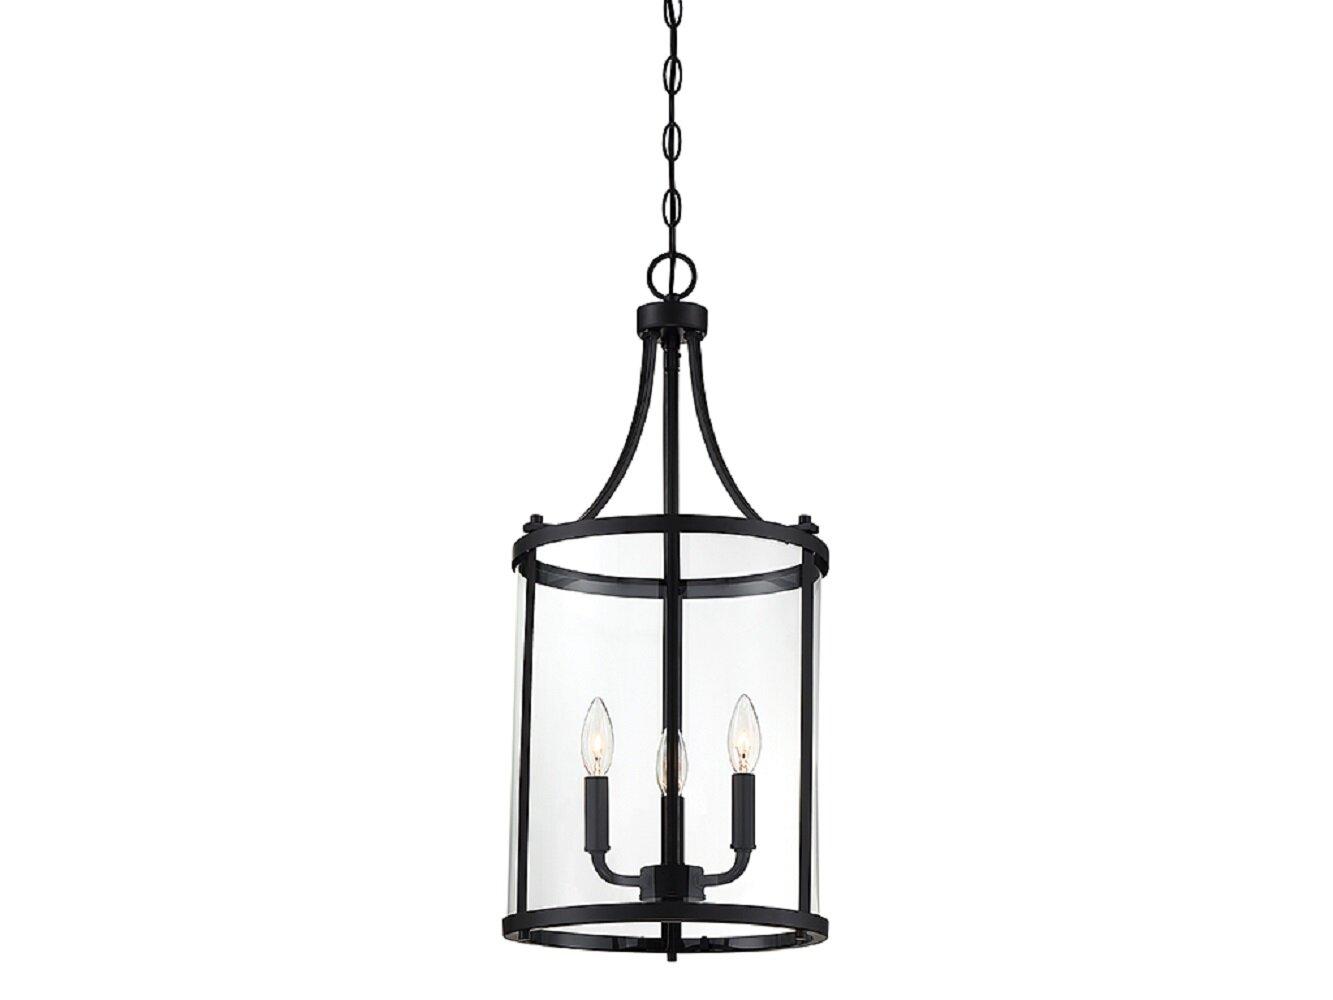 Ezio 3-Light Lantern Cylinder Pendant in Sherri-Ann 3-Light Lantern Square / Rectangle Pendants (Image 9 of 30)